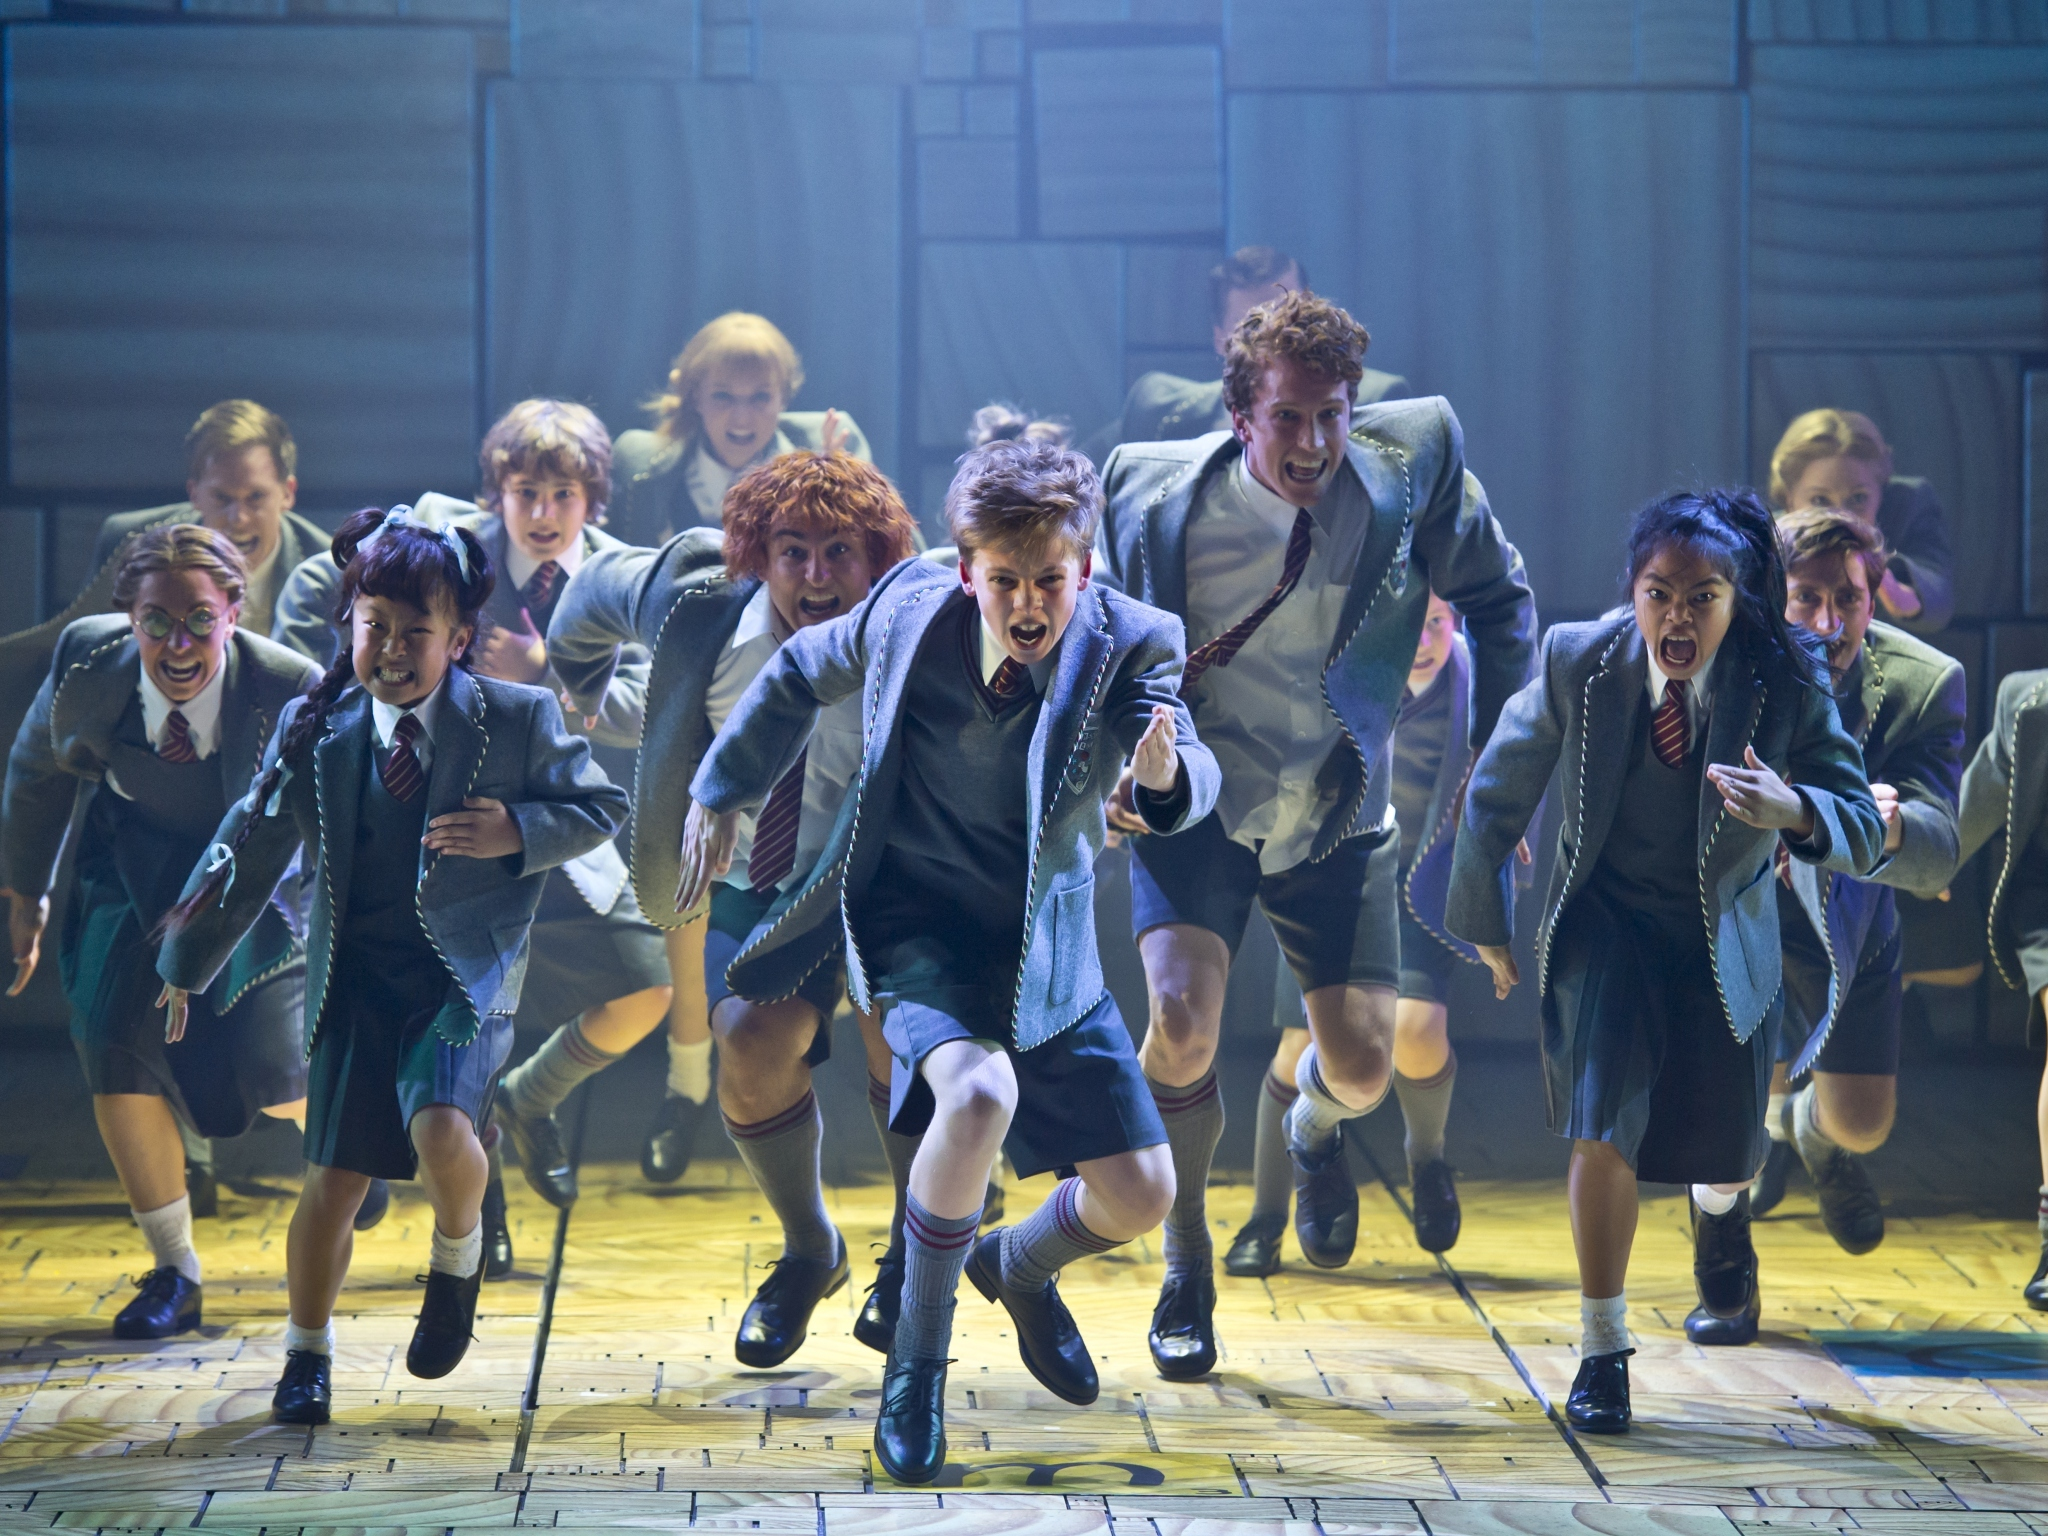 Matilda won all the Helpmanns last night, so buy a ticket while you can